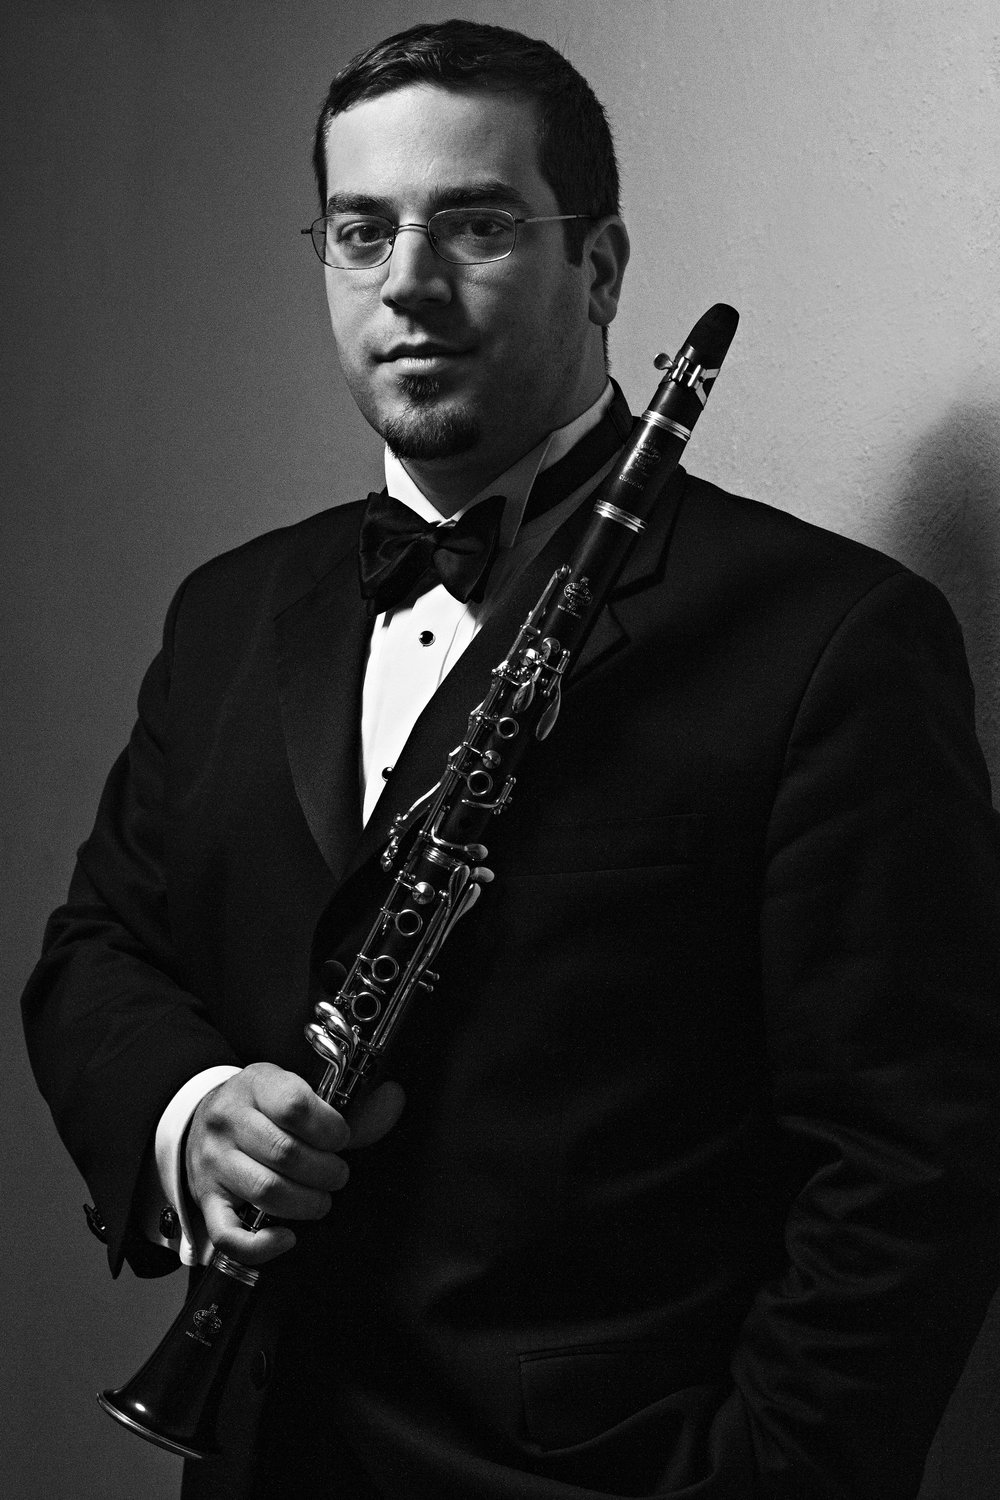 Giuseppe Fusco - Reed 3 - Flute / Clarinet / Soprano Sax / Tenor SaxGiuseppe is a freelance woodwind artist whose instruments are flute, clarinet, and saxophone.  He received his Bachelor's degree from Rutgers University in saxophone and music education and his Master's from New Jersey City University in multiple woodwind performance.  Giuseppe is founder and artistic director of Chamber Music Society of North Jersey, which is about to begin its fourth season of programming.  He has played in numerous Broadway and freelance symphonic orchestras, and is on adjunct faculty at New Jersey City University. www.giuseppe-fusco.com